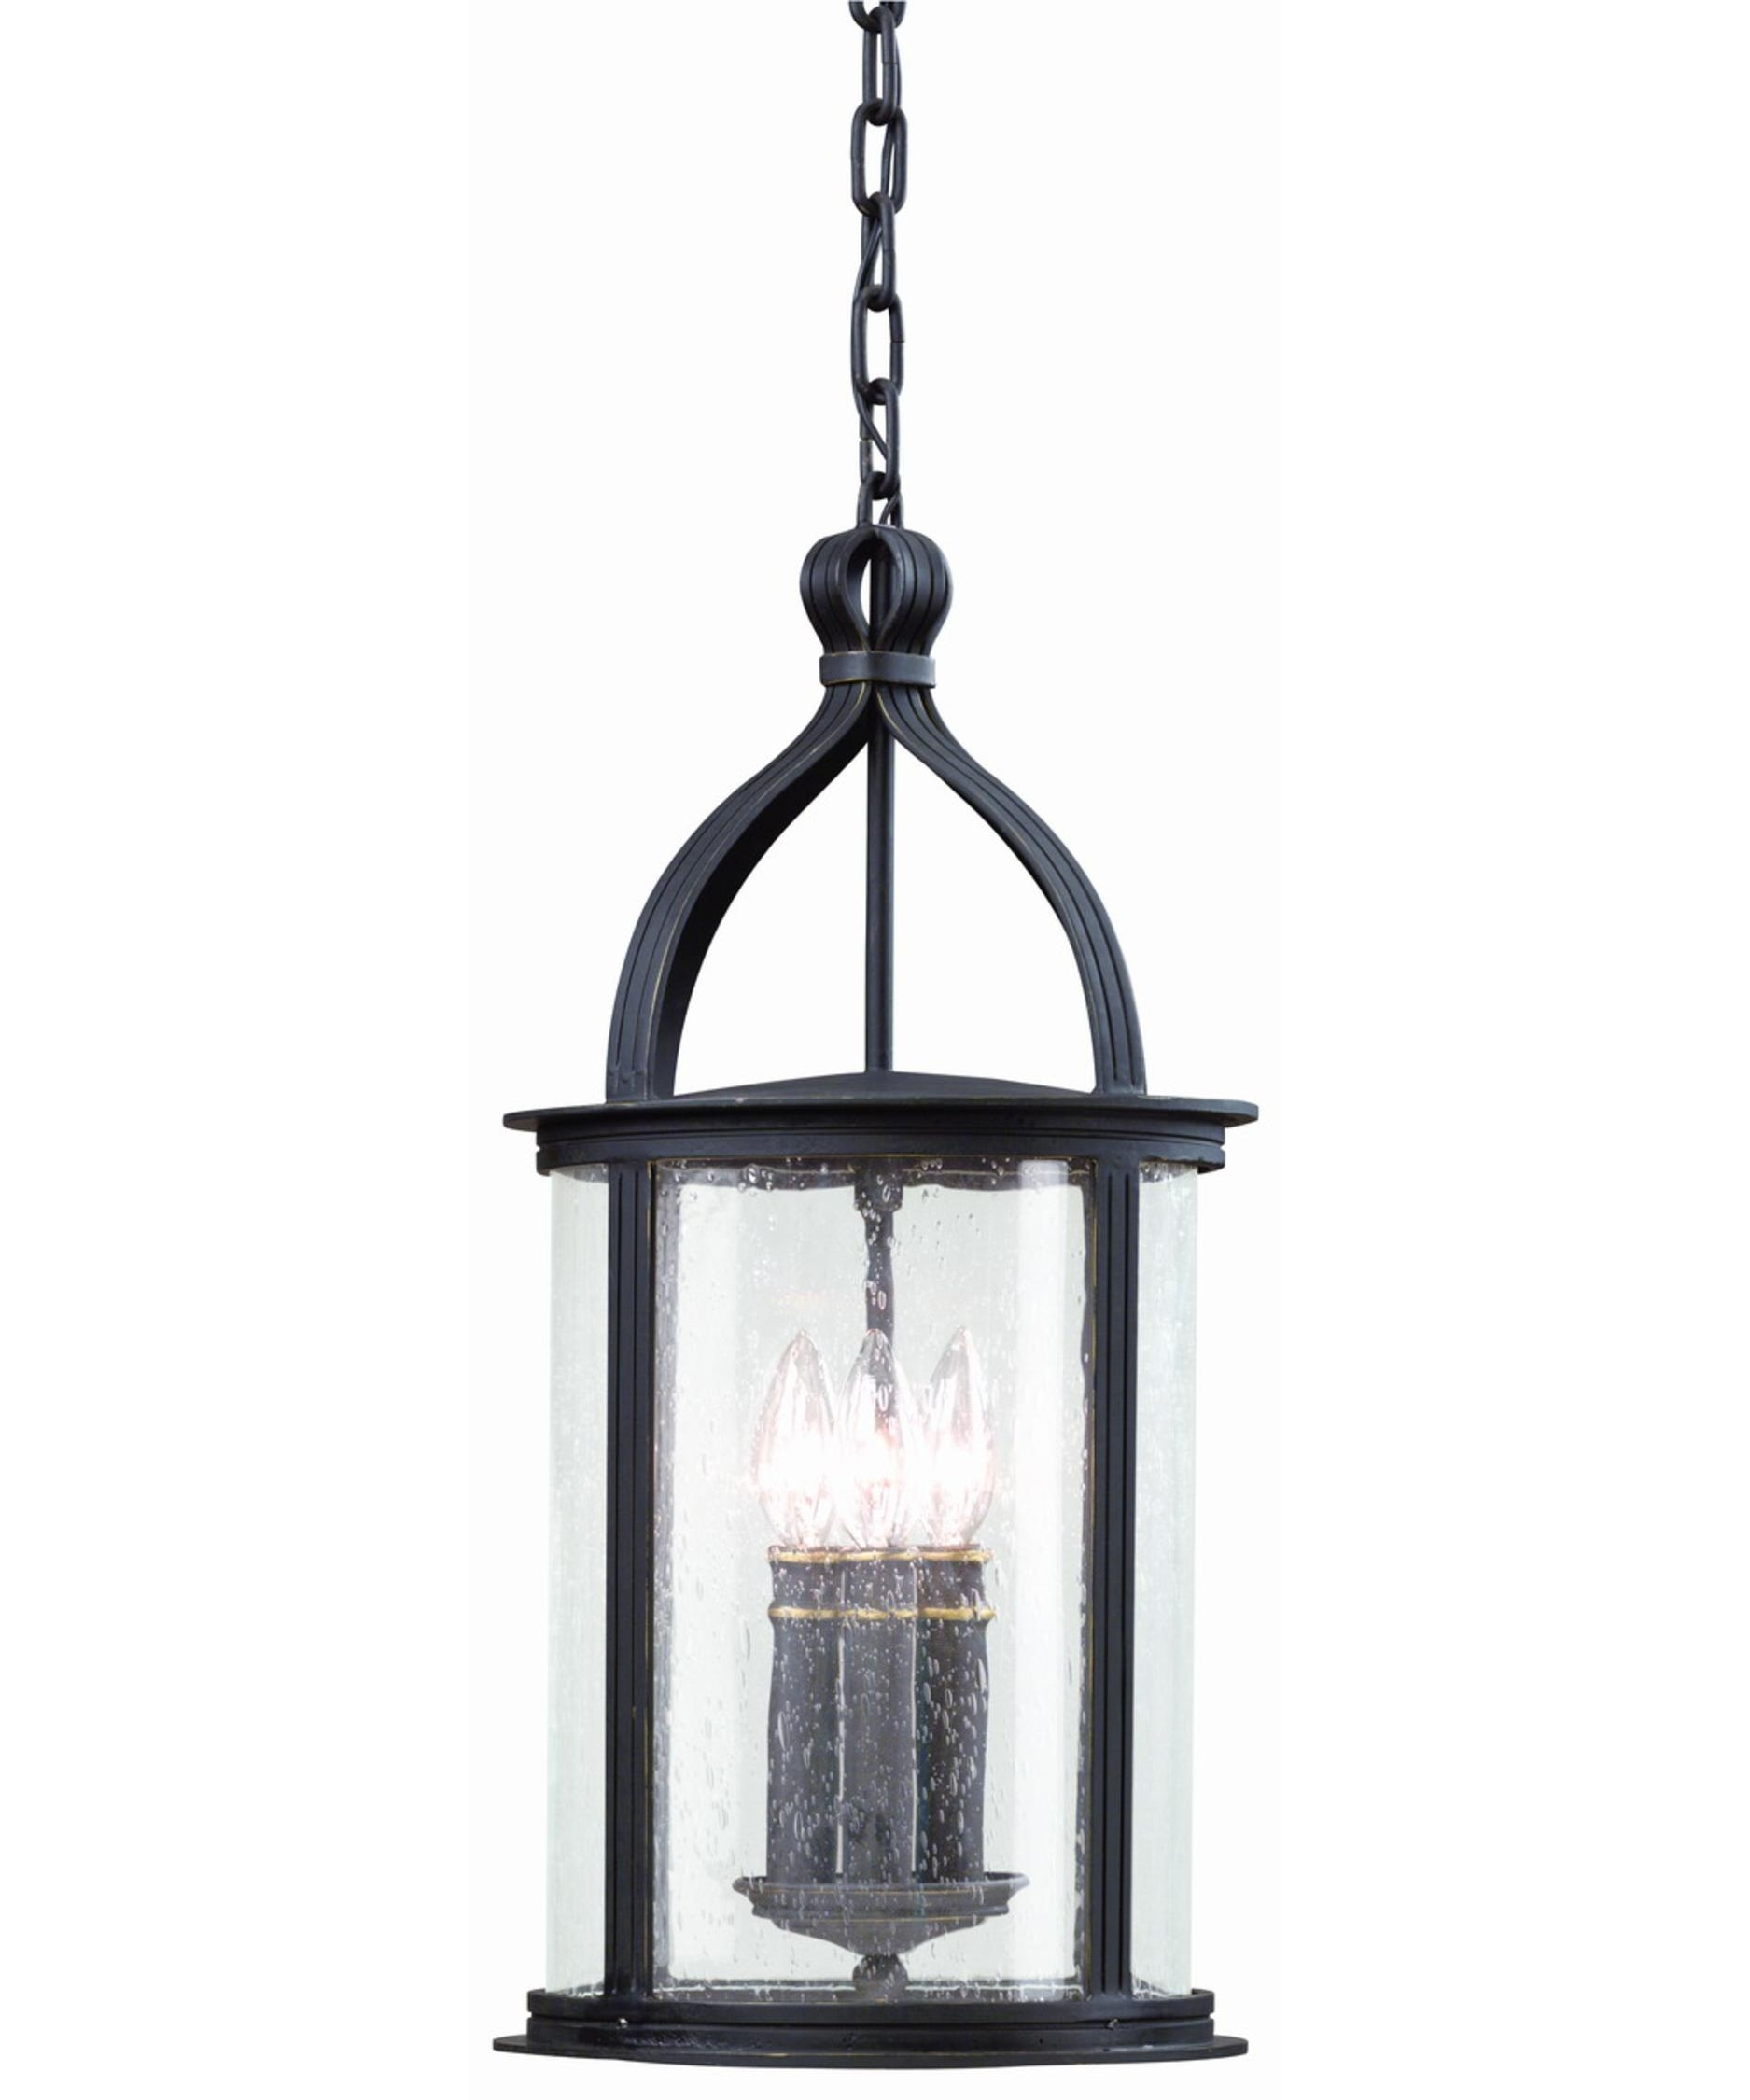 Troy Lighting F9476 Scarsdale 10 Inch Wide 3 Light Outdoor Hanging Intended For Most Current Outdoor Glass Lanterns (View 6 of 20)